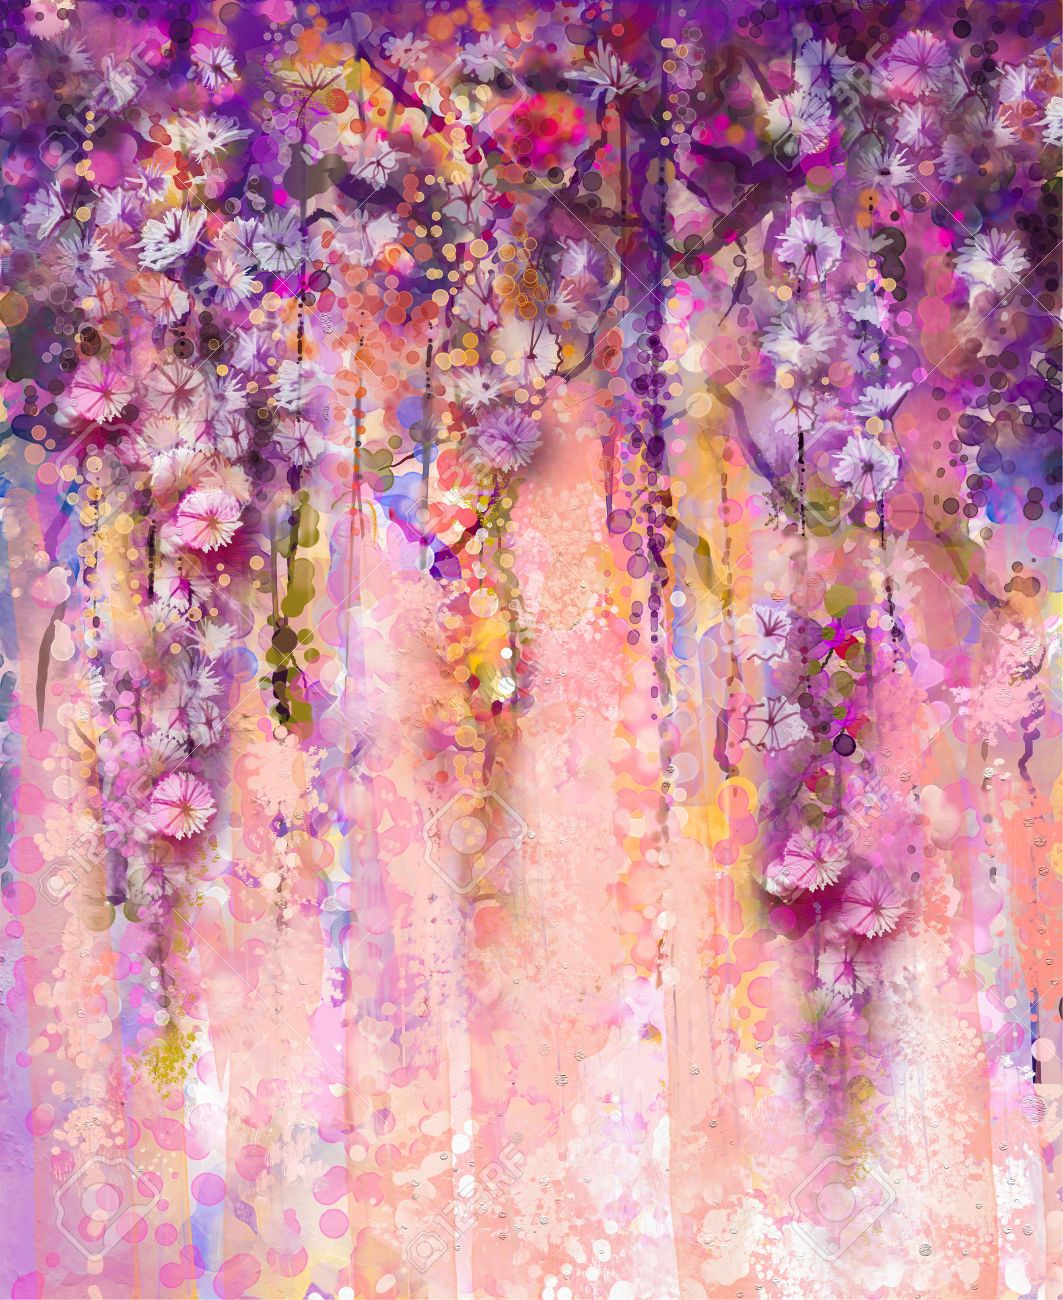 abstract pink and violet color flowers watercolor